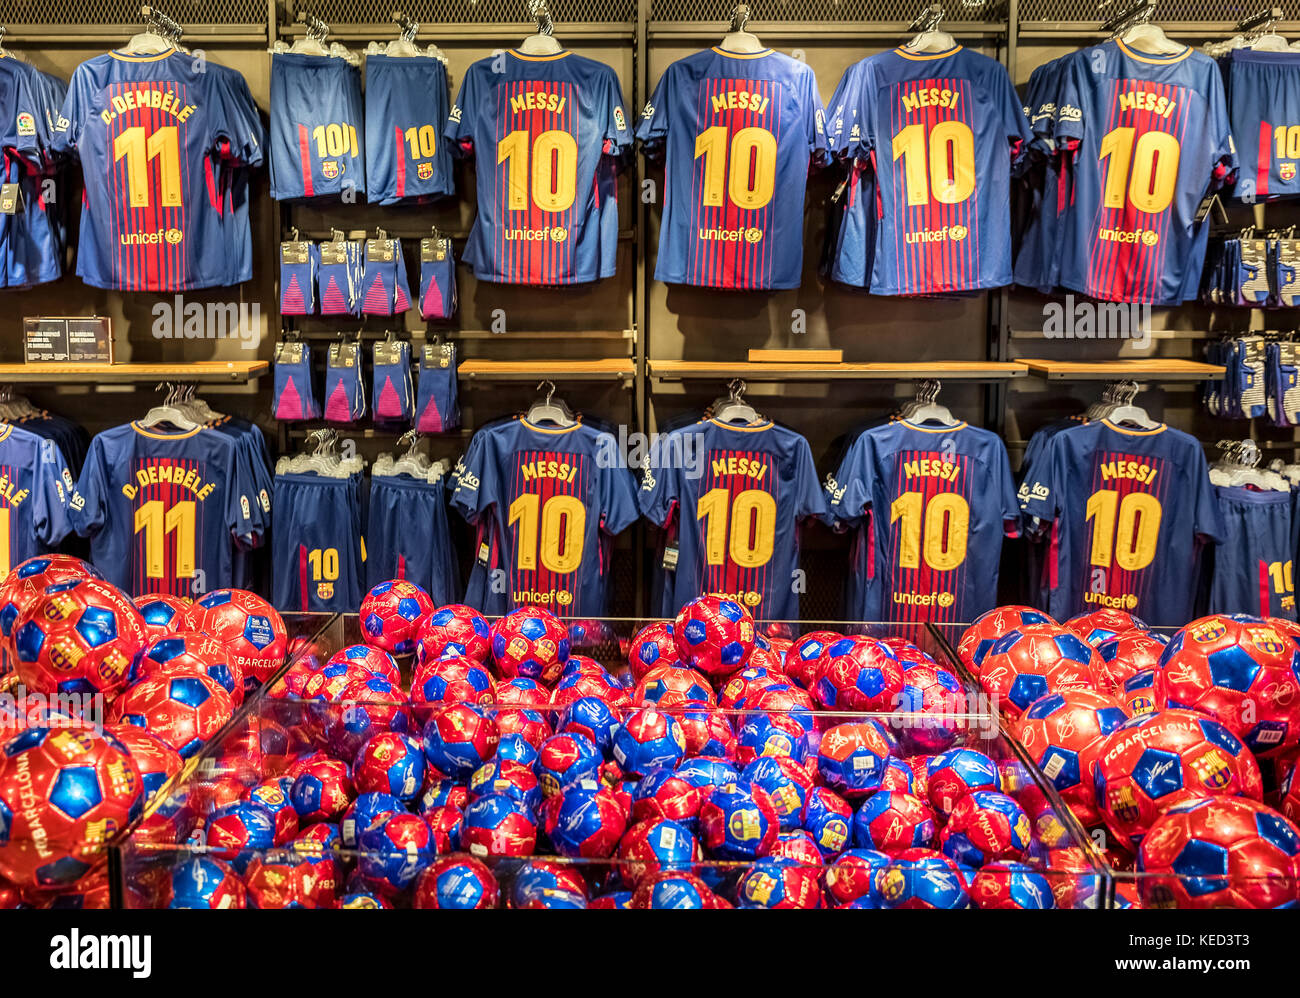 Popular Messi jerseys dominate the Camp Nou store, Barcelona, Spain. - Stock Image